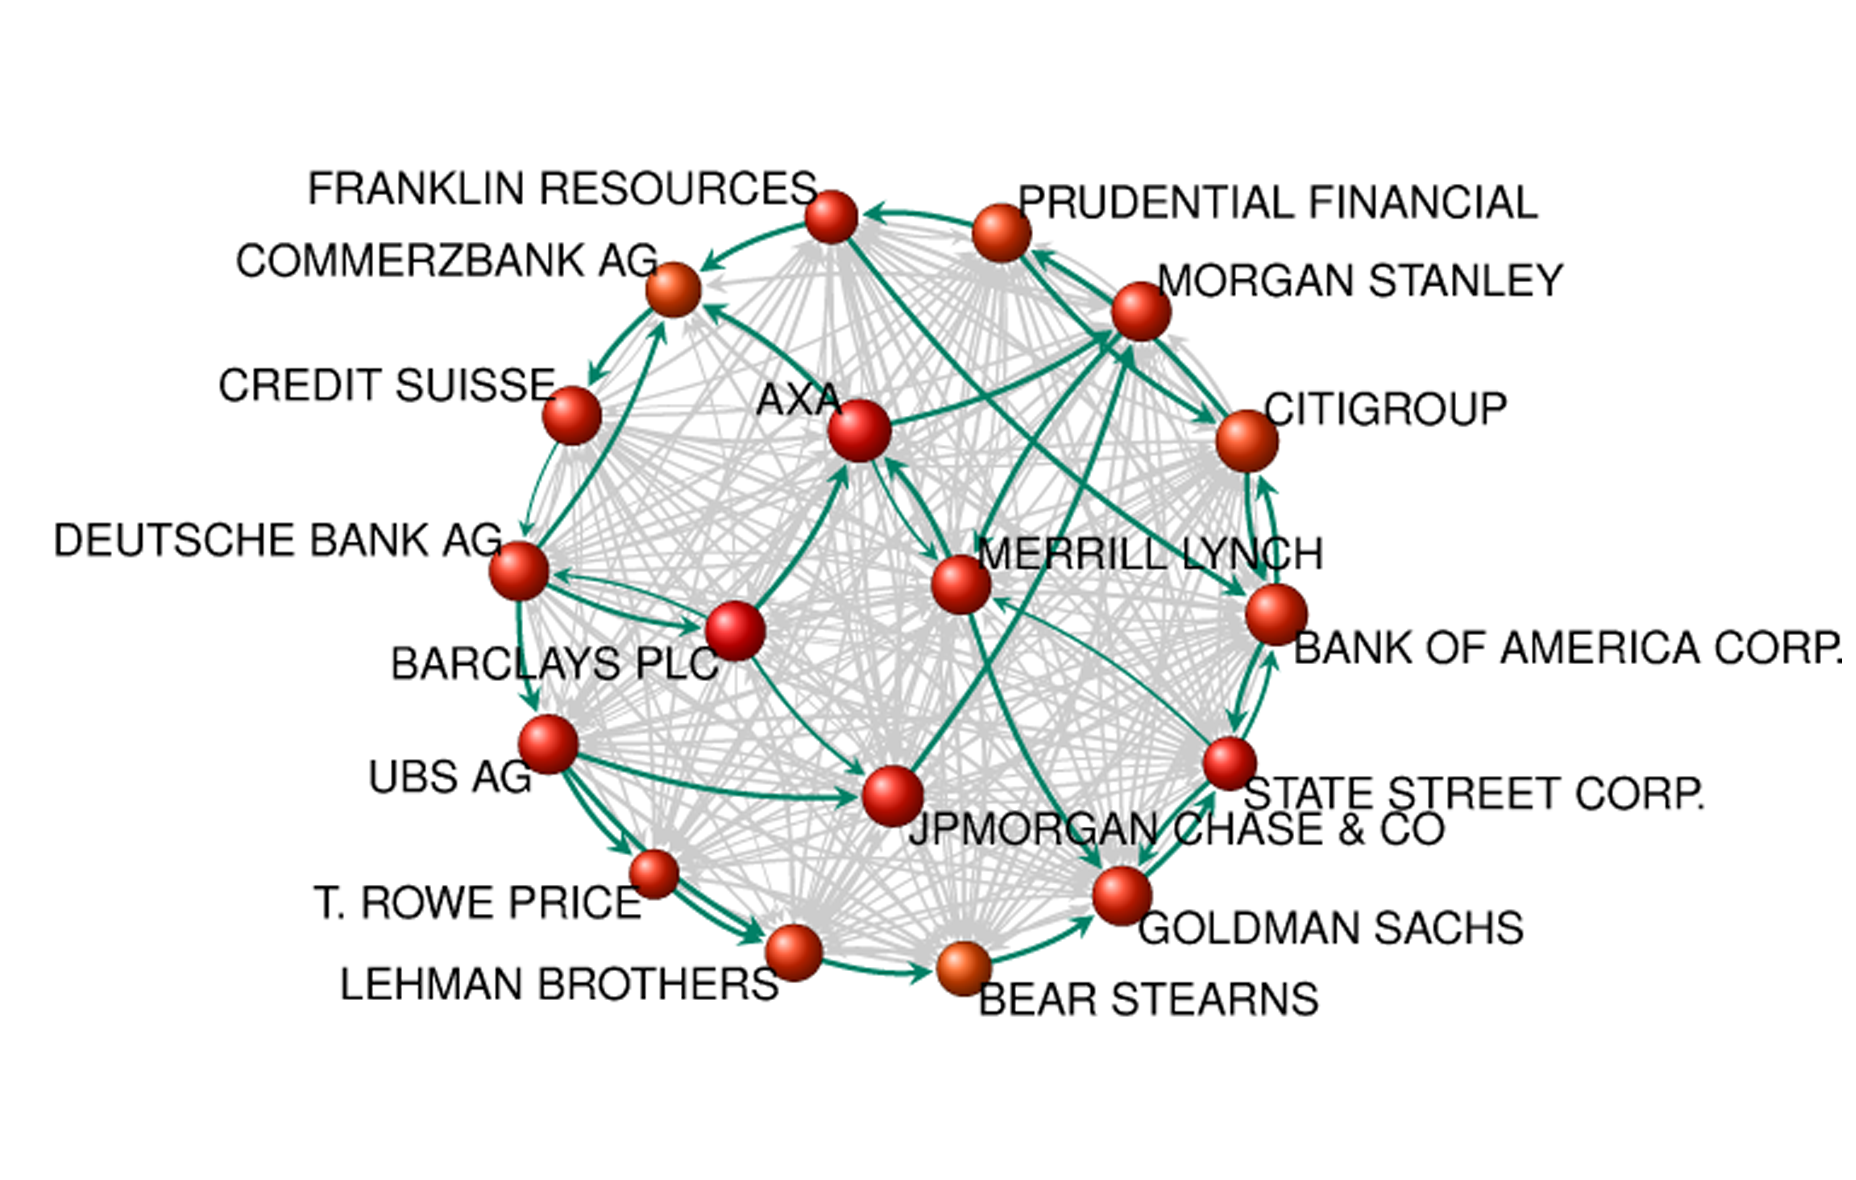 The Network of Global Corporate Control (Stefania Vitali, James B. Glattfelder, Stefano Battiston)